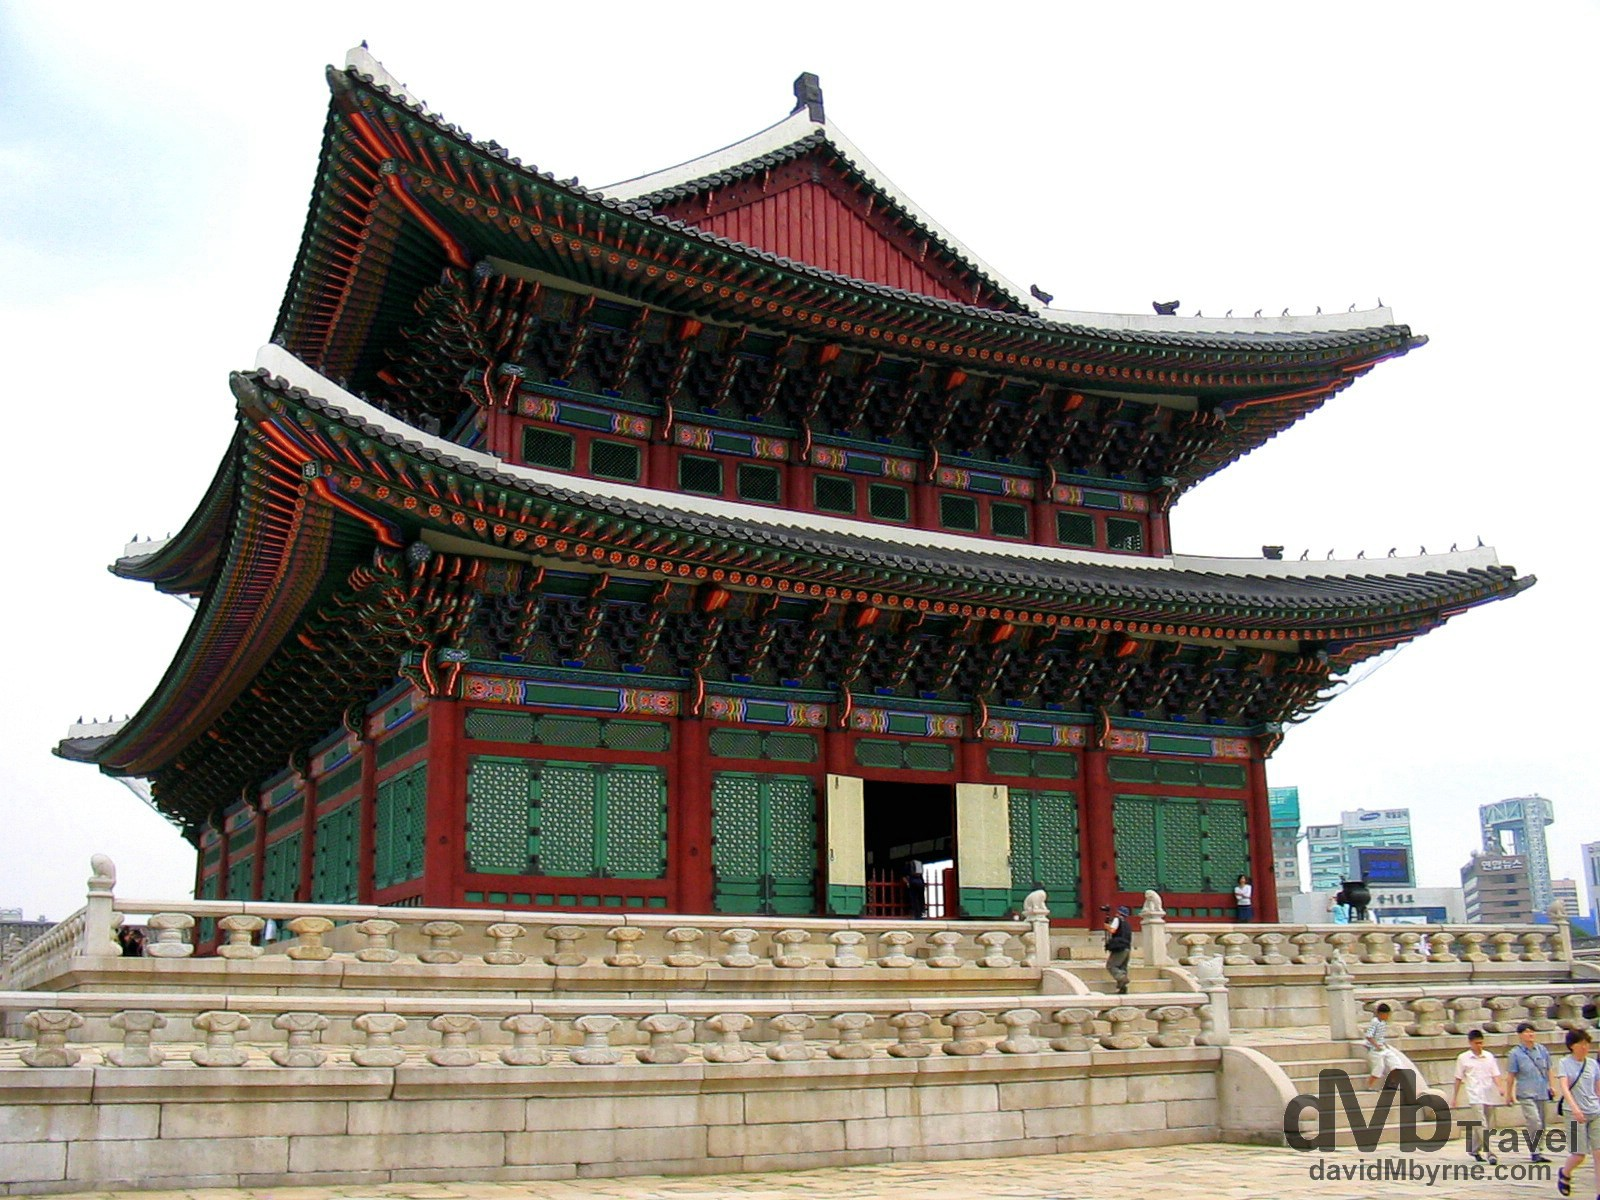 The grounds of Gyeongbokgung, the Grand Palace, Seoul, South Korea. August 15th 2004